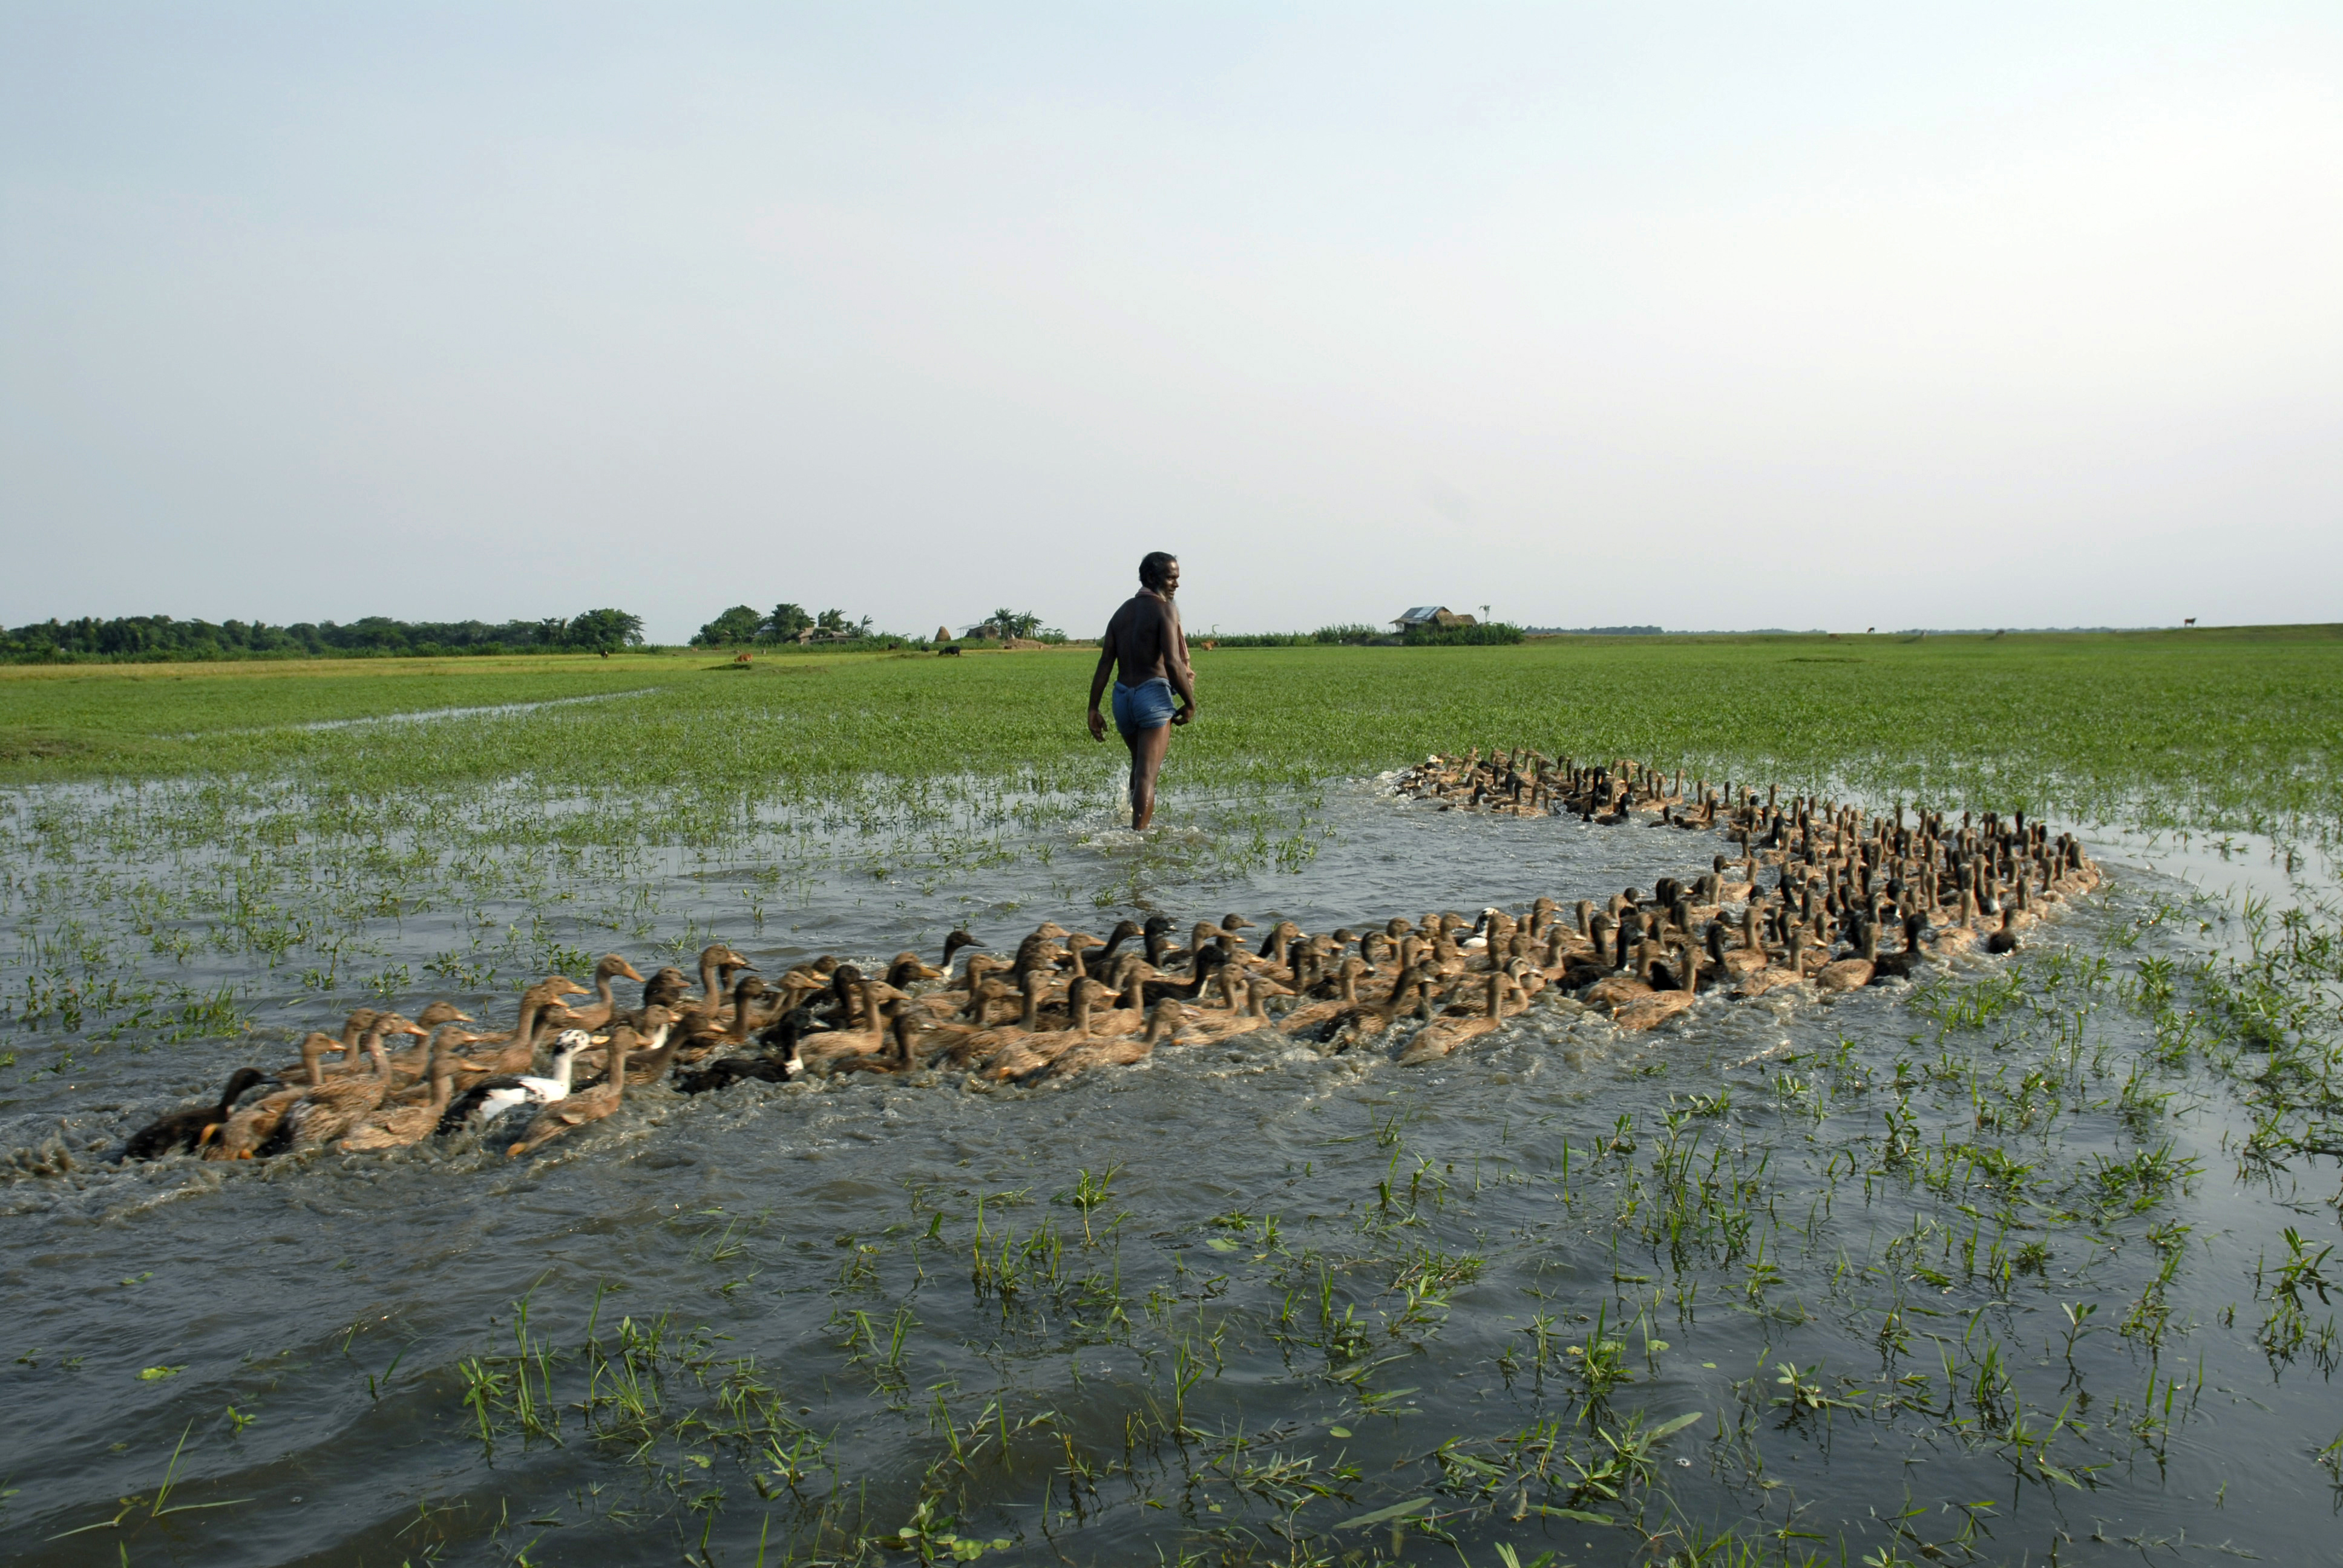 Duck rearing in submerged field